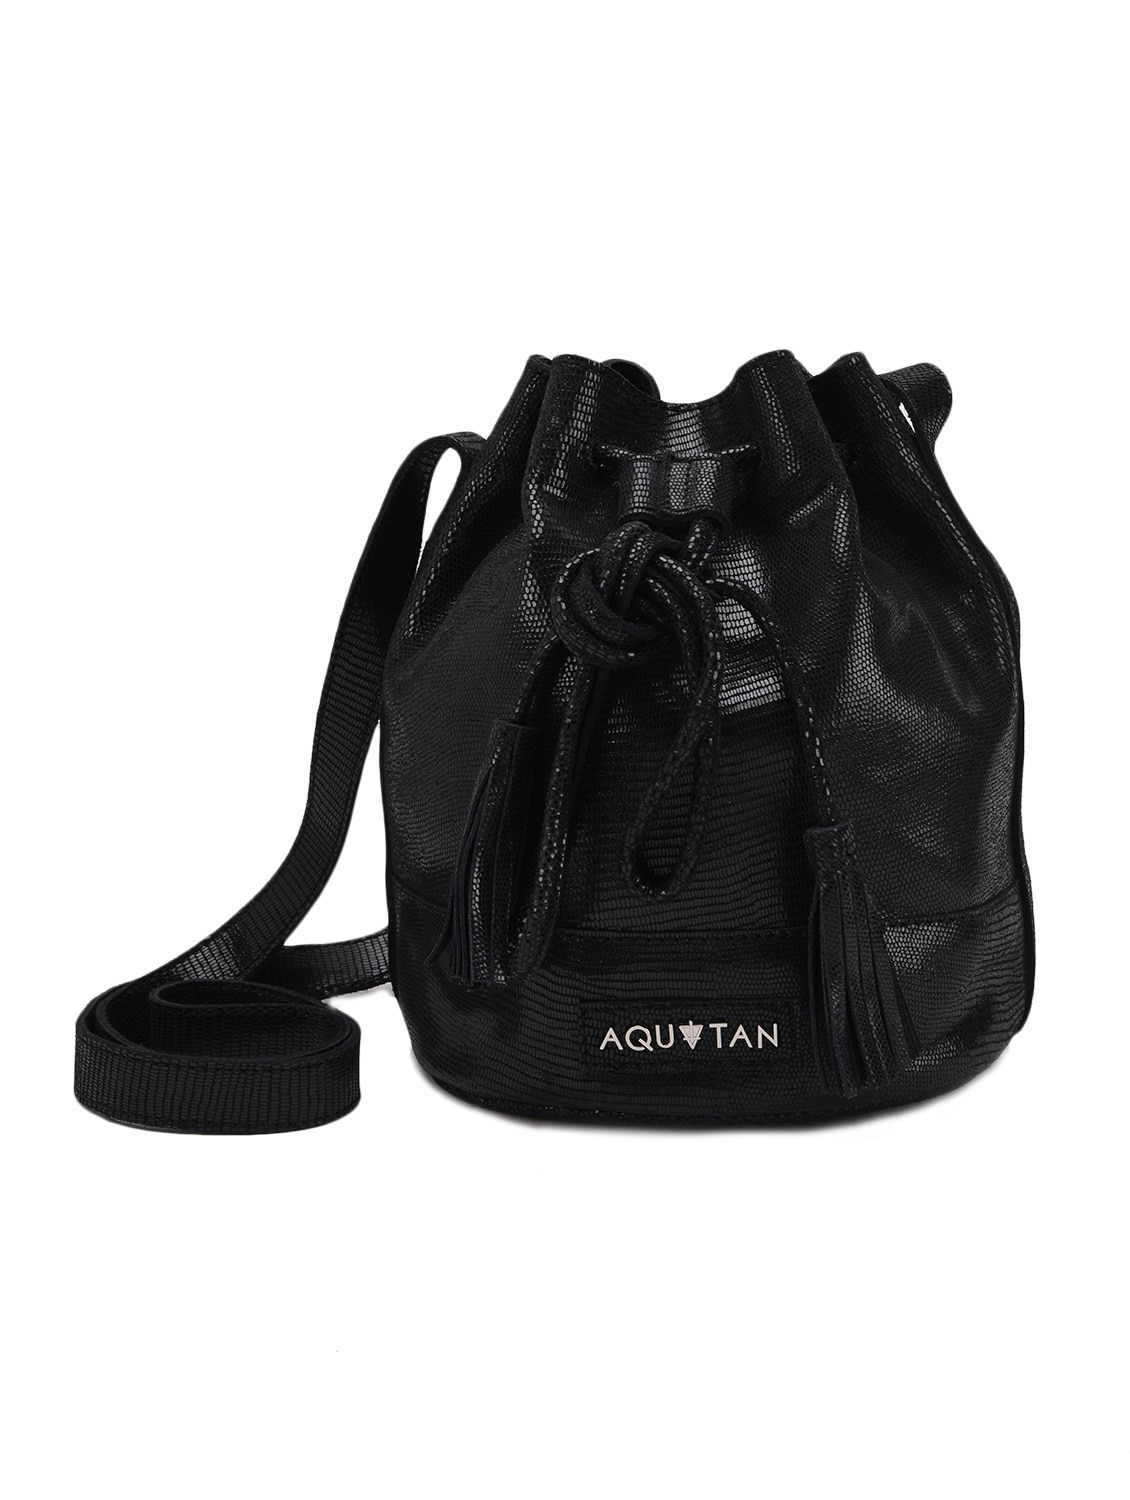 ... Buy Textured Black Leather Drawstring Sling Bag by Aquatan - Online  shopping for Sling Bags in ... 1fb640c3bc9a1